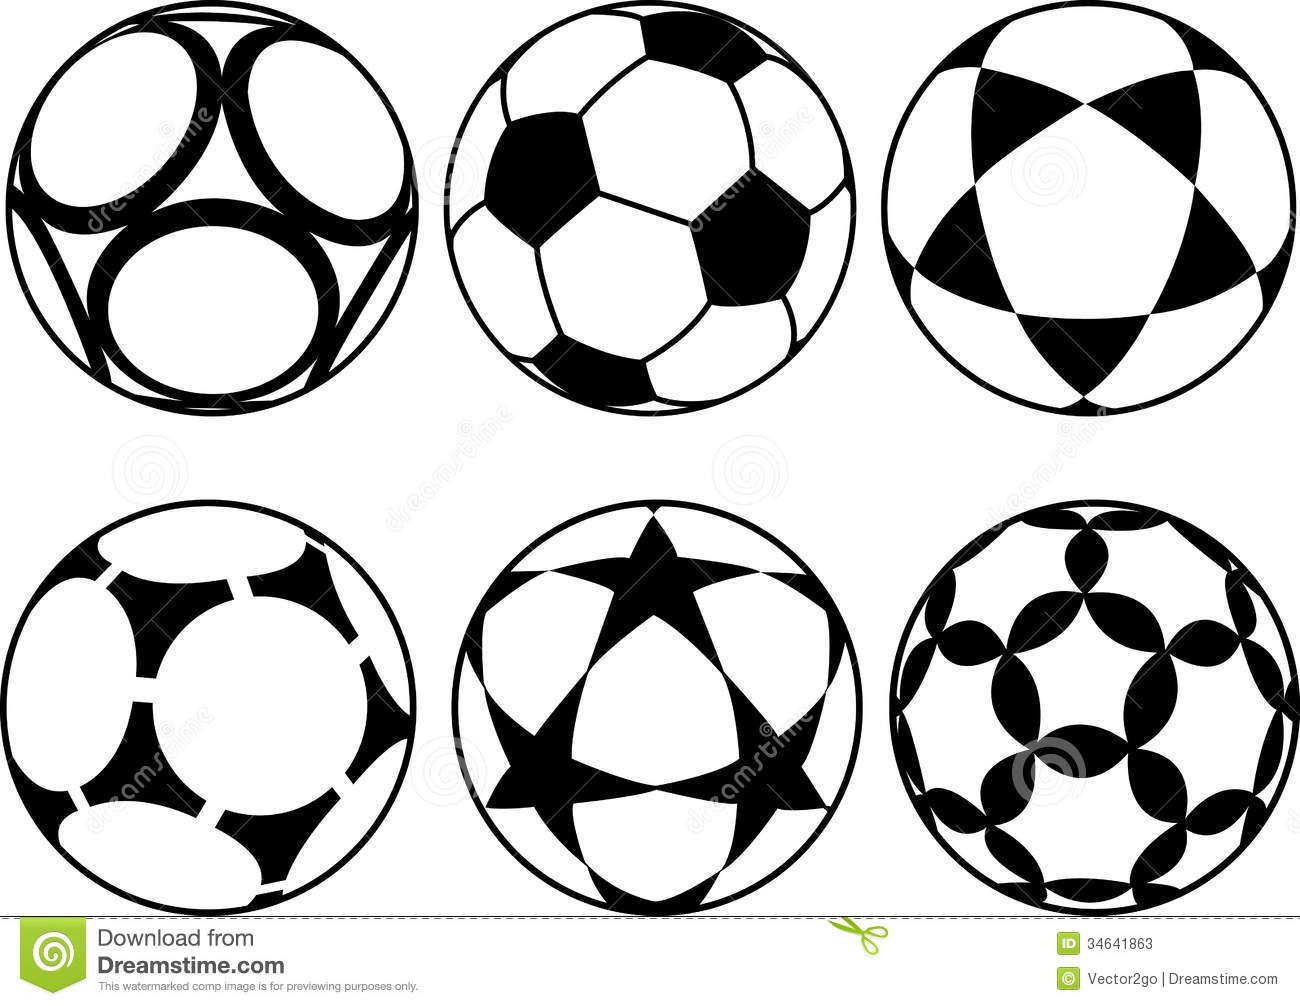 Clipart nike soccer ball banner transparent stock Nike soccer ball clipart - ClipartFox banner transparent stock